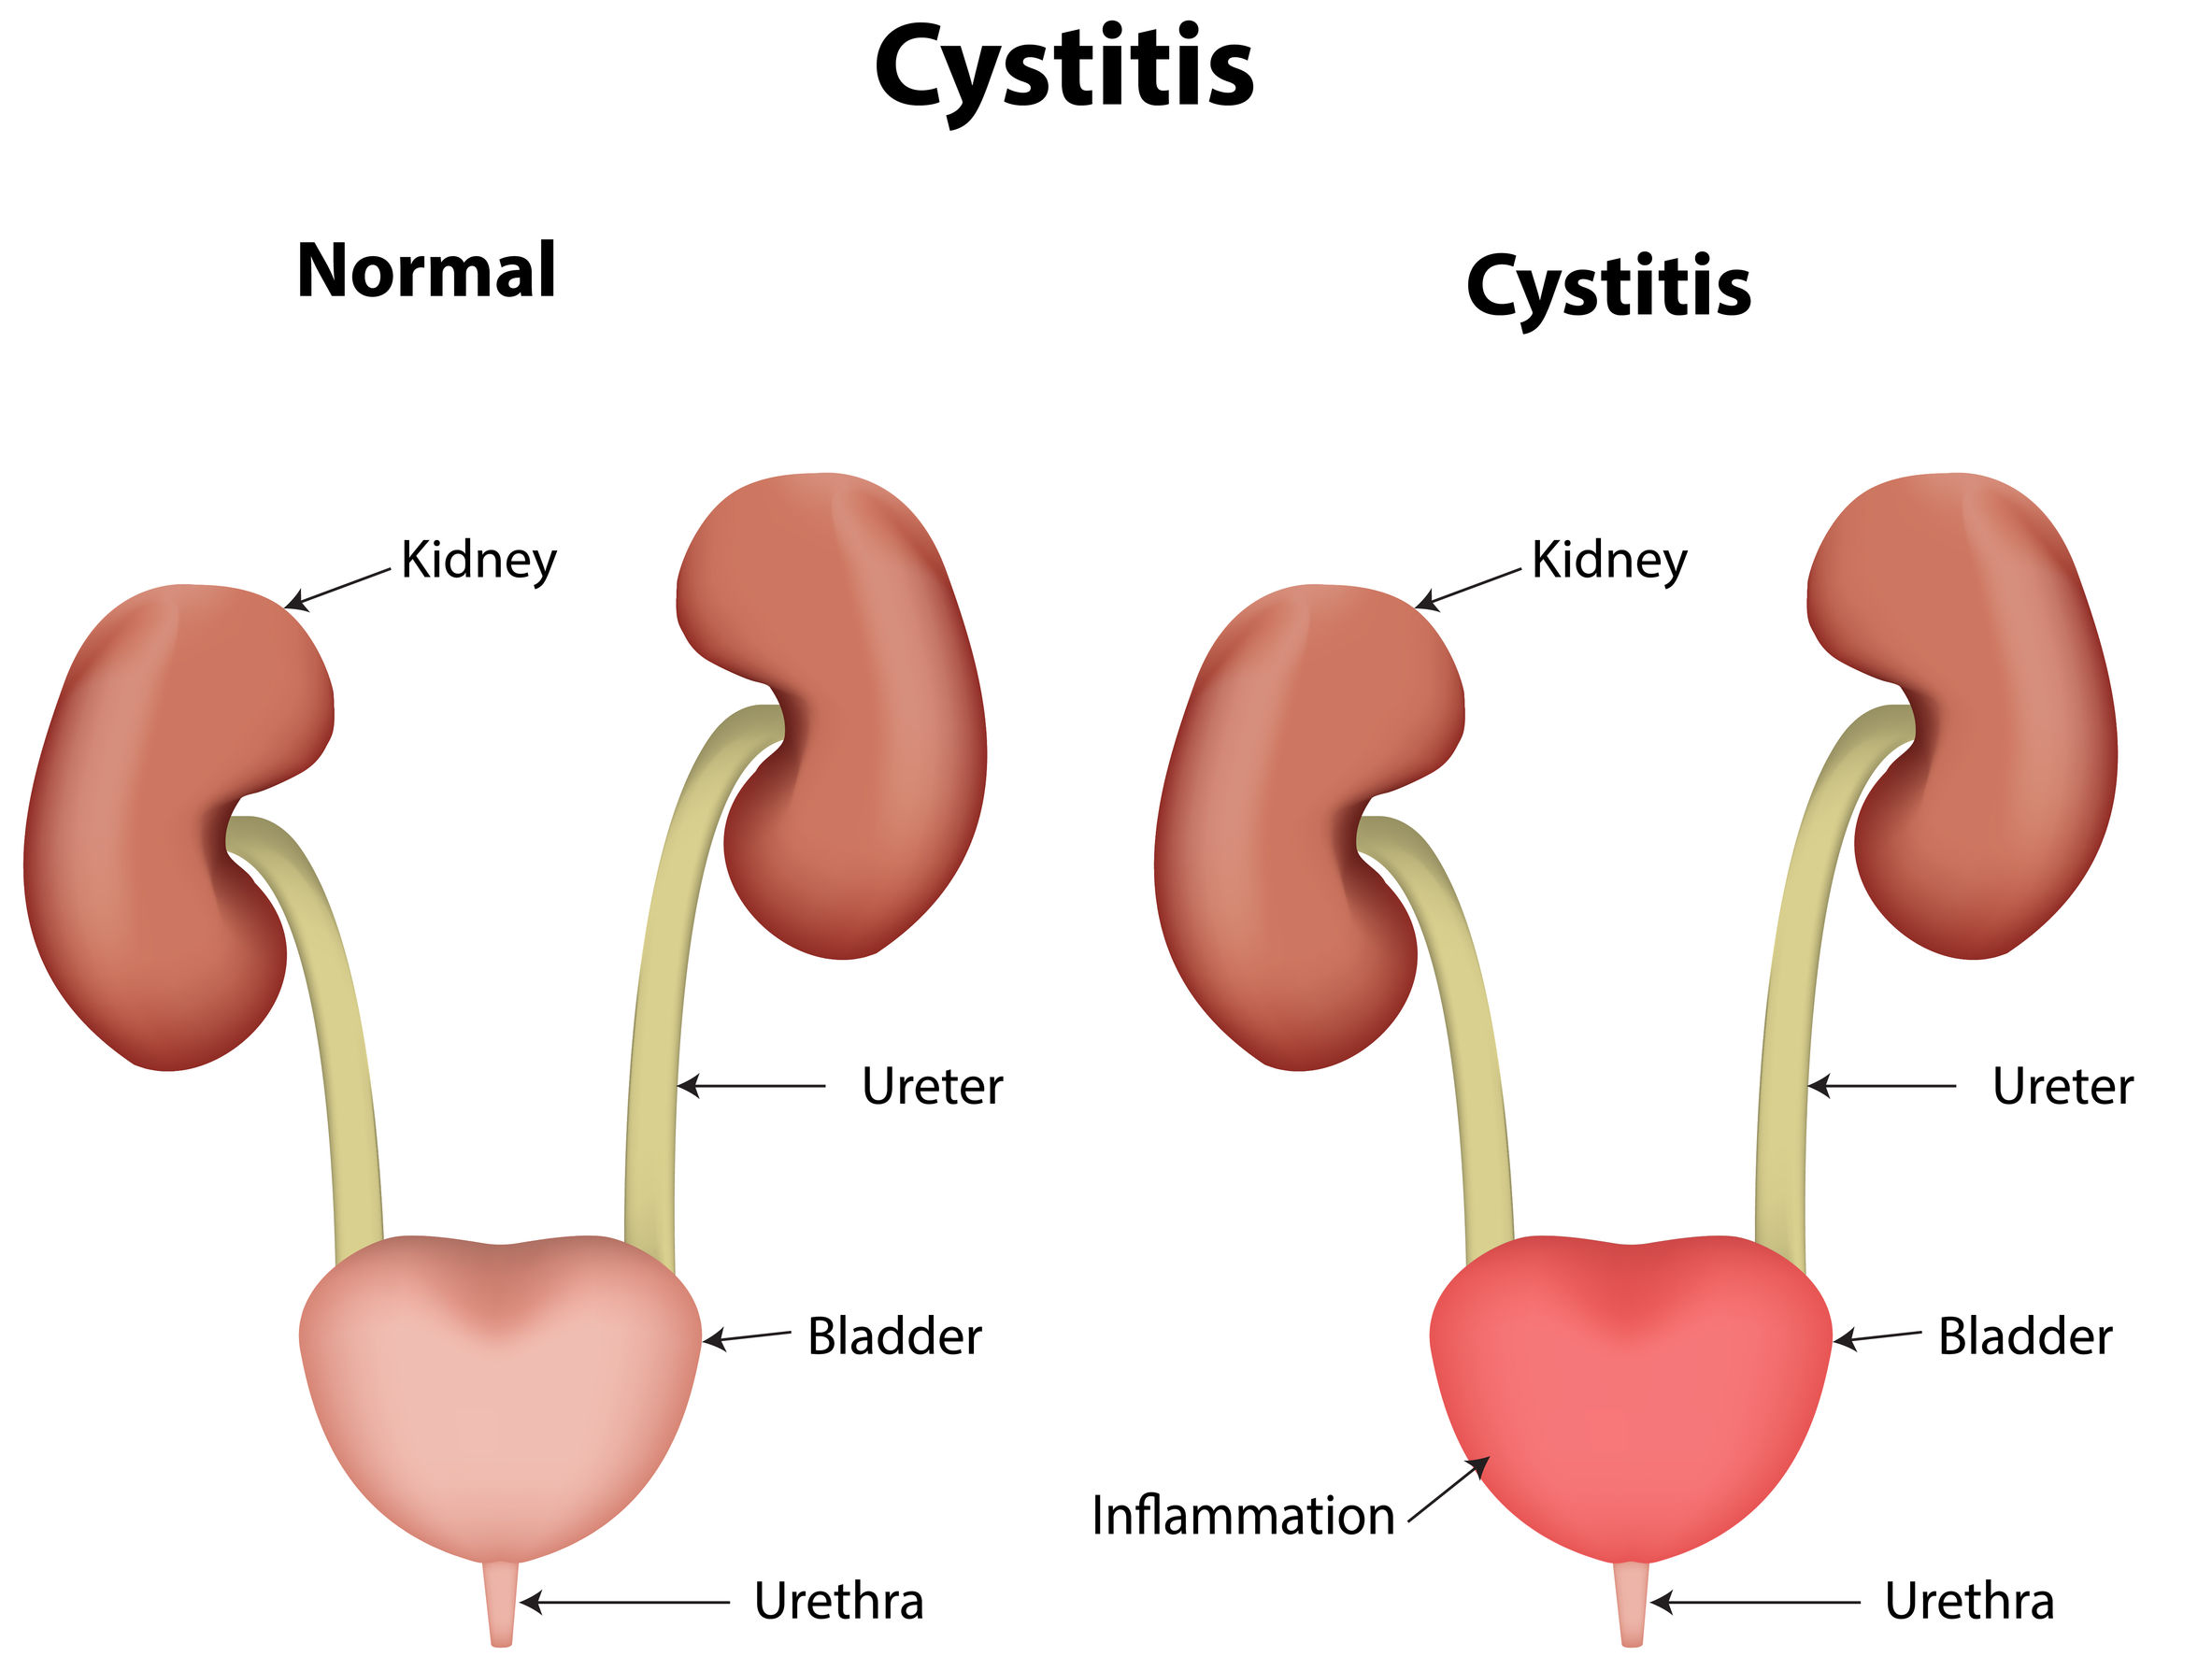 Symptoms of cystitis and its prevention